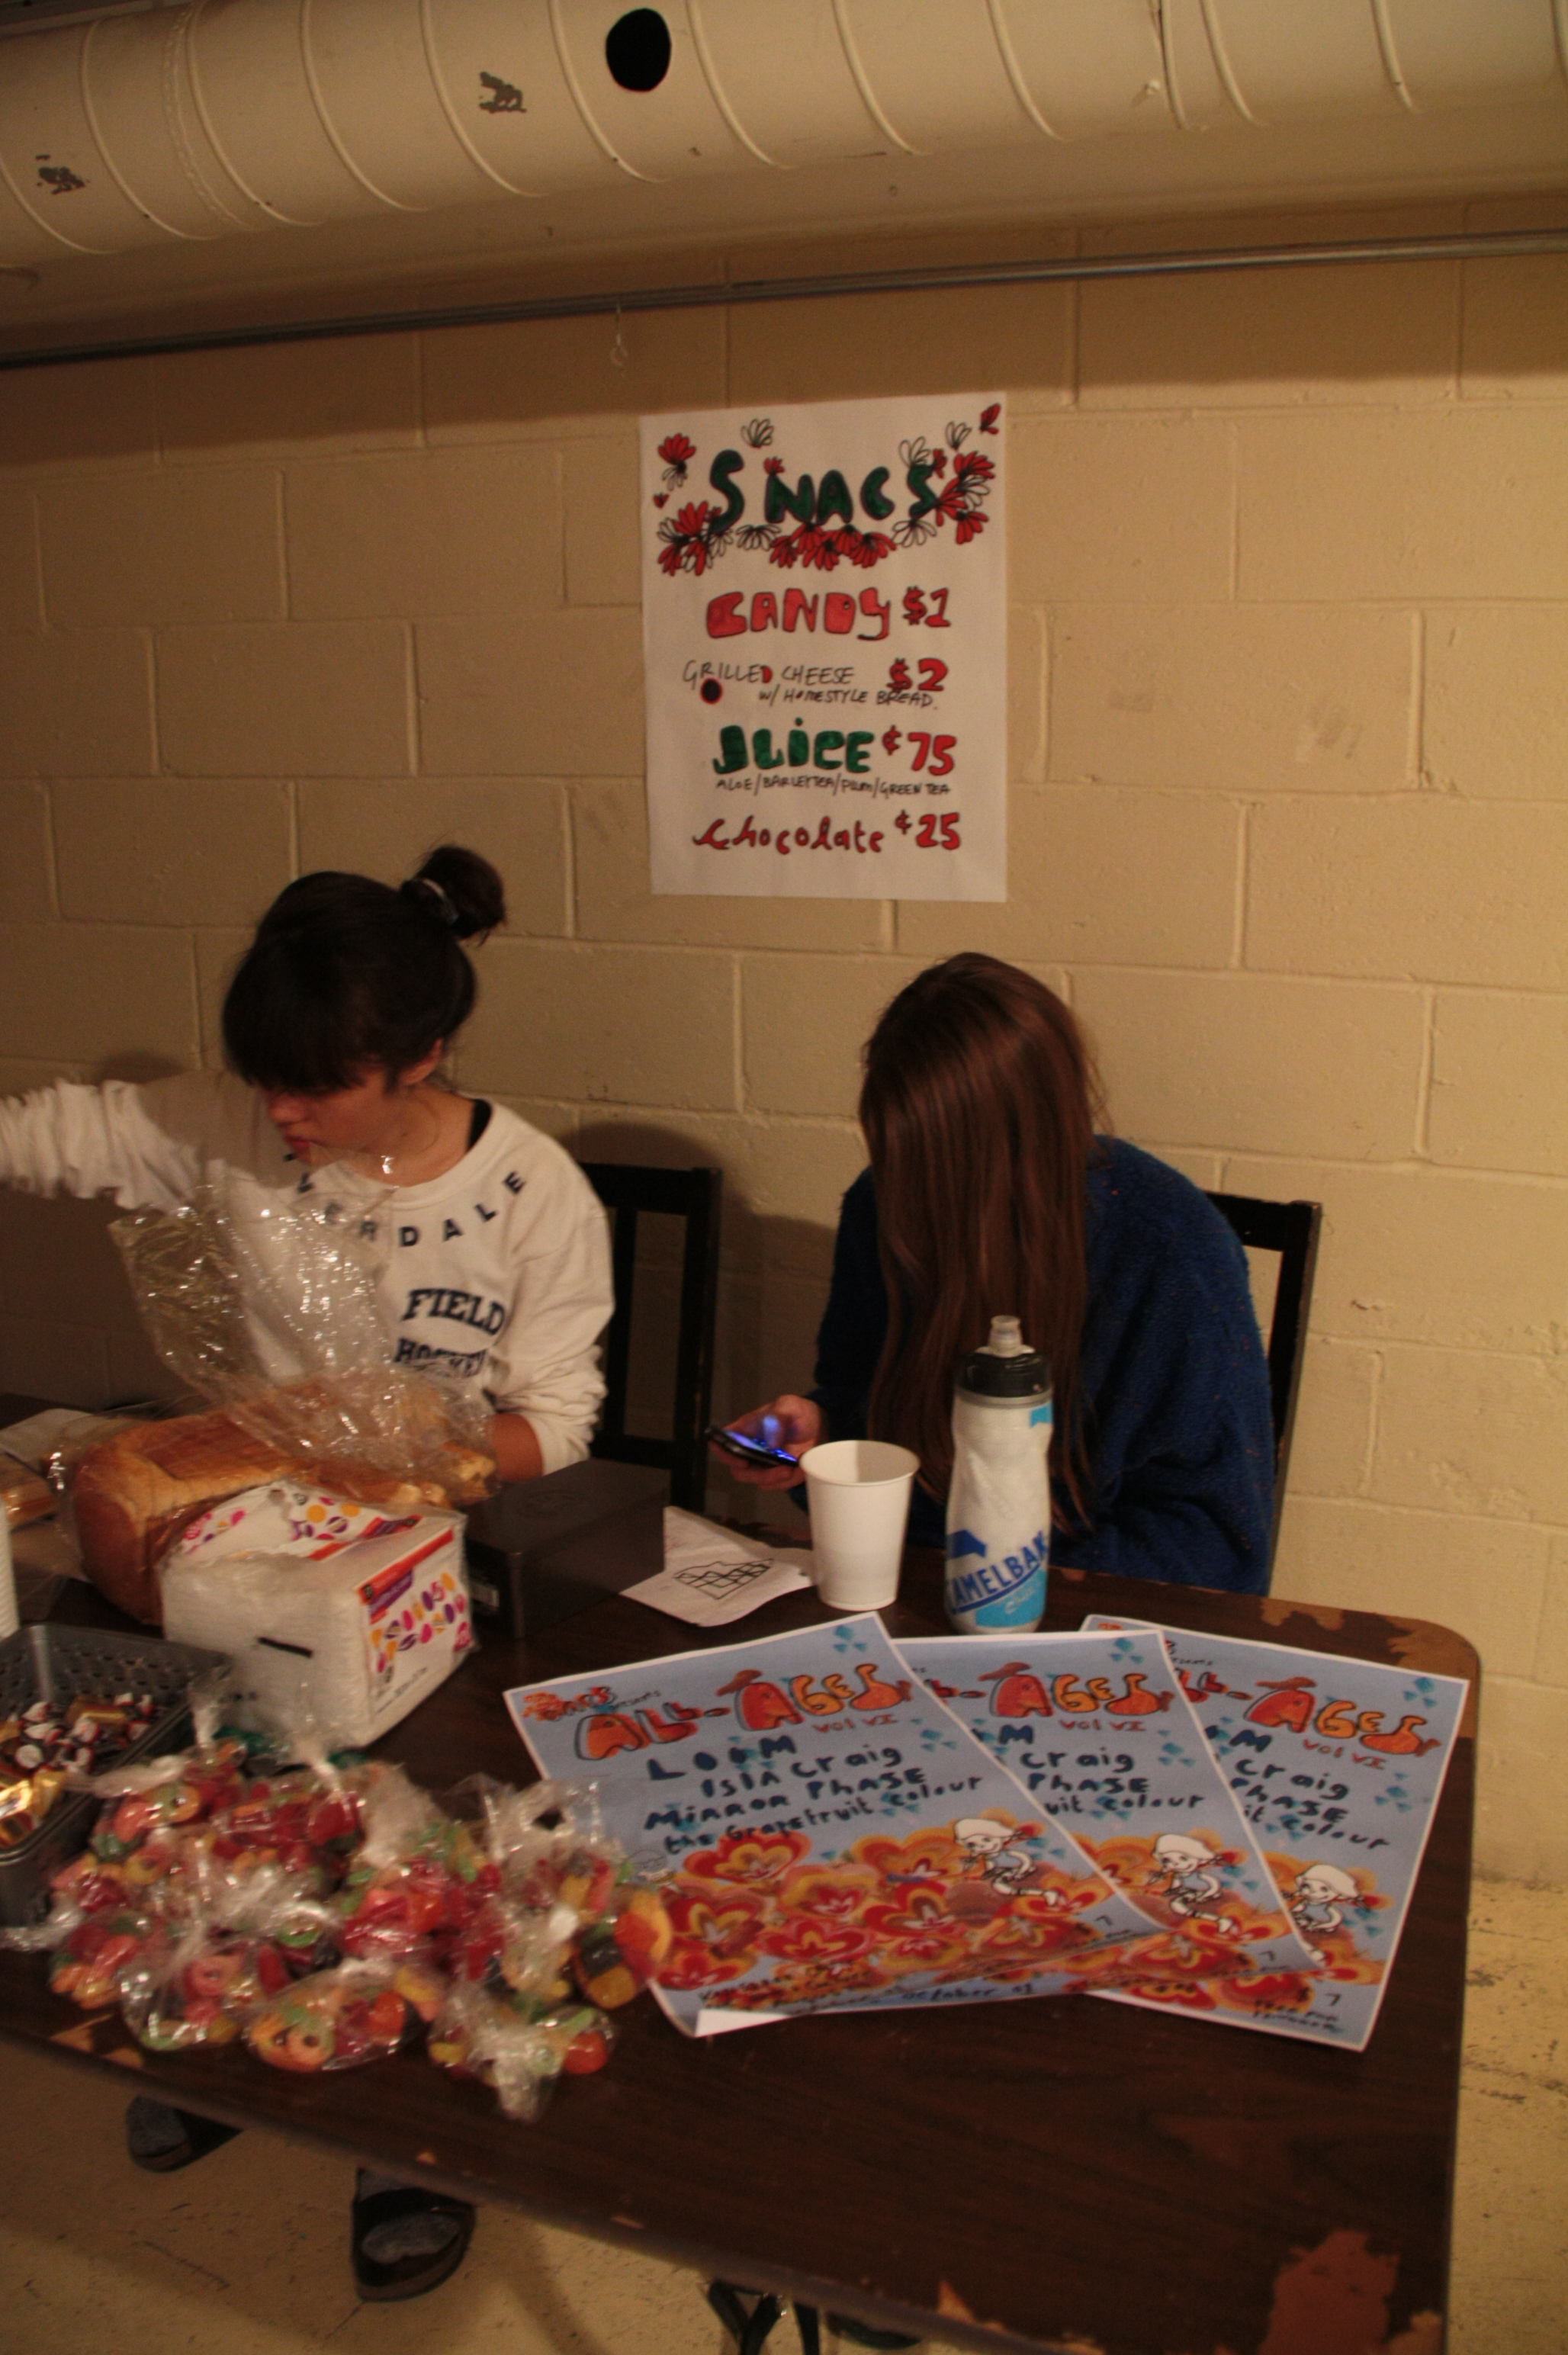 Snack bar at Daps All Ages